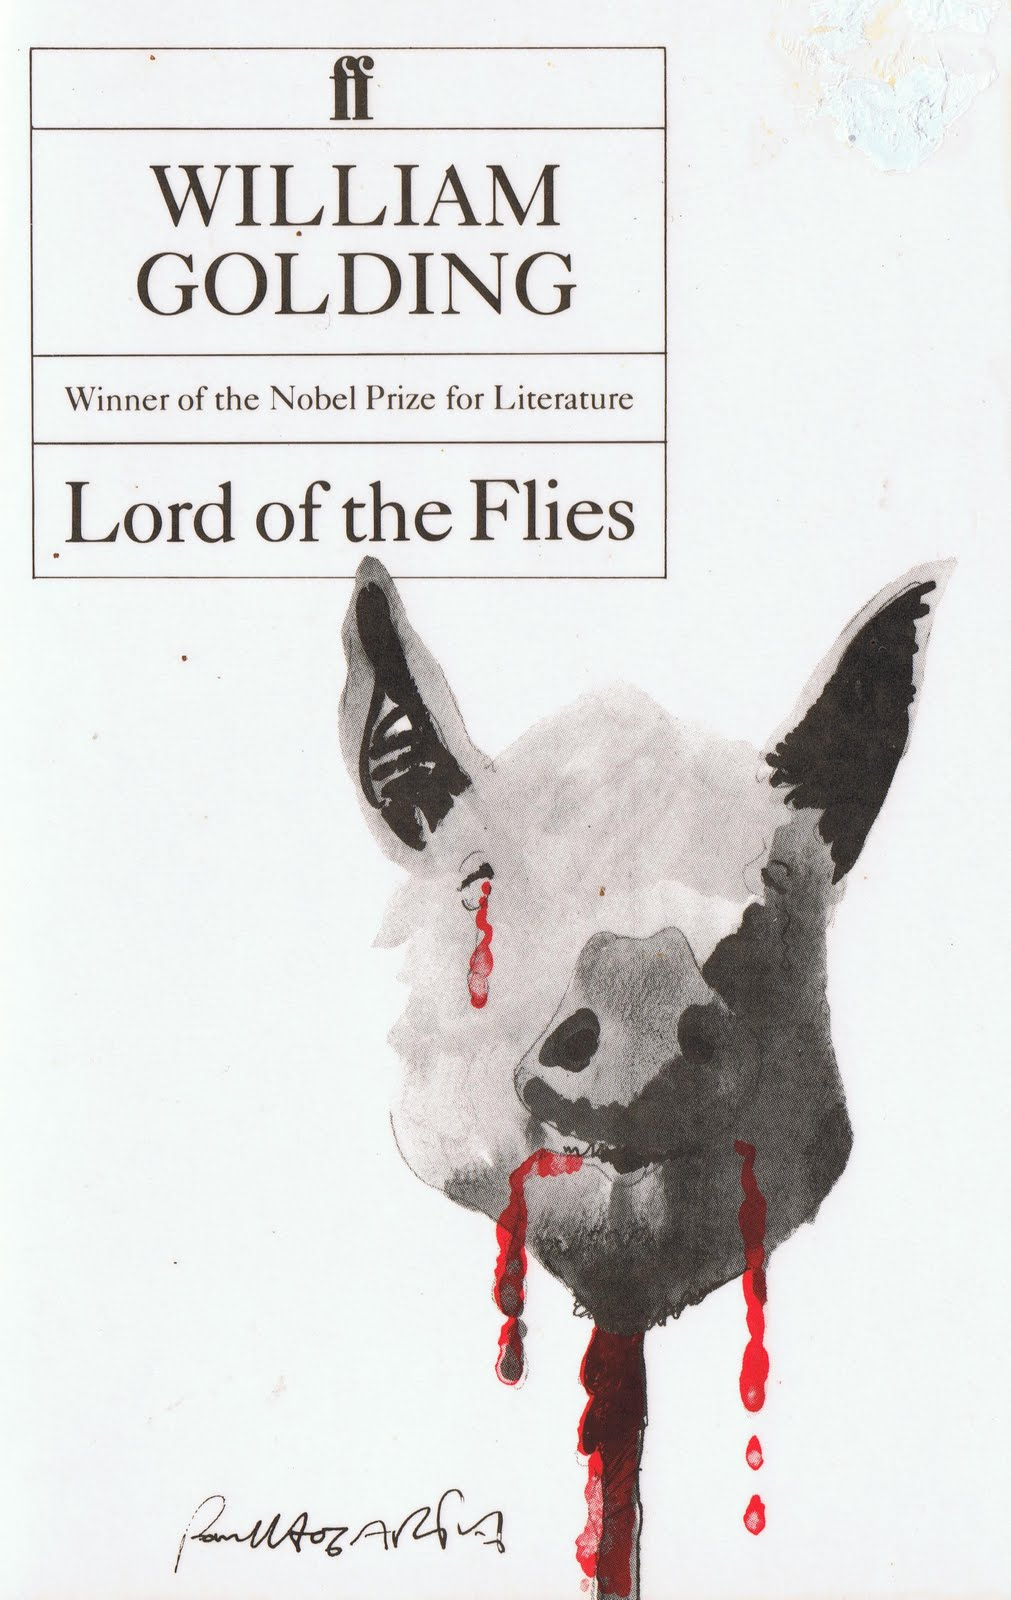 a personal review of lord of the flies a novel by william golding What does lord of the flies say about human nature help and review are portrayed in the classic novel, lord of the flies by william golding.